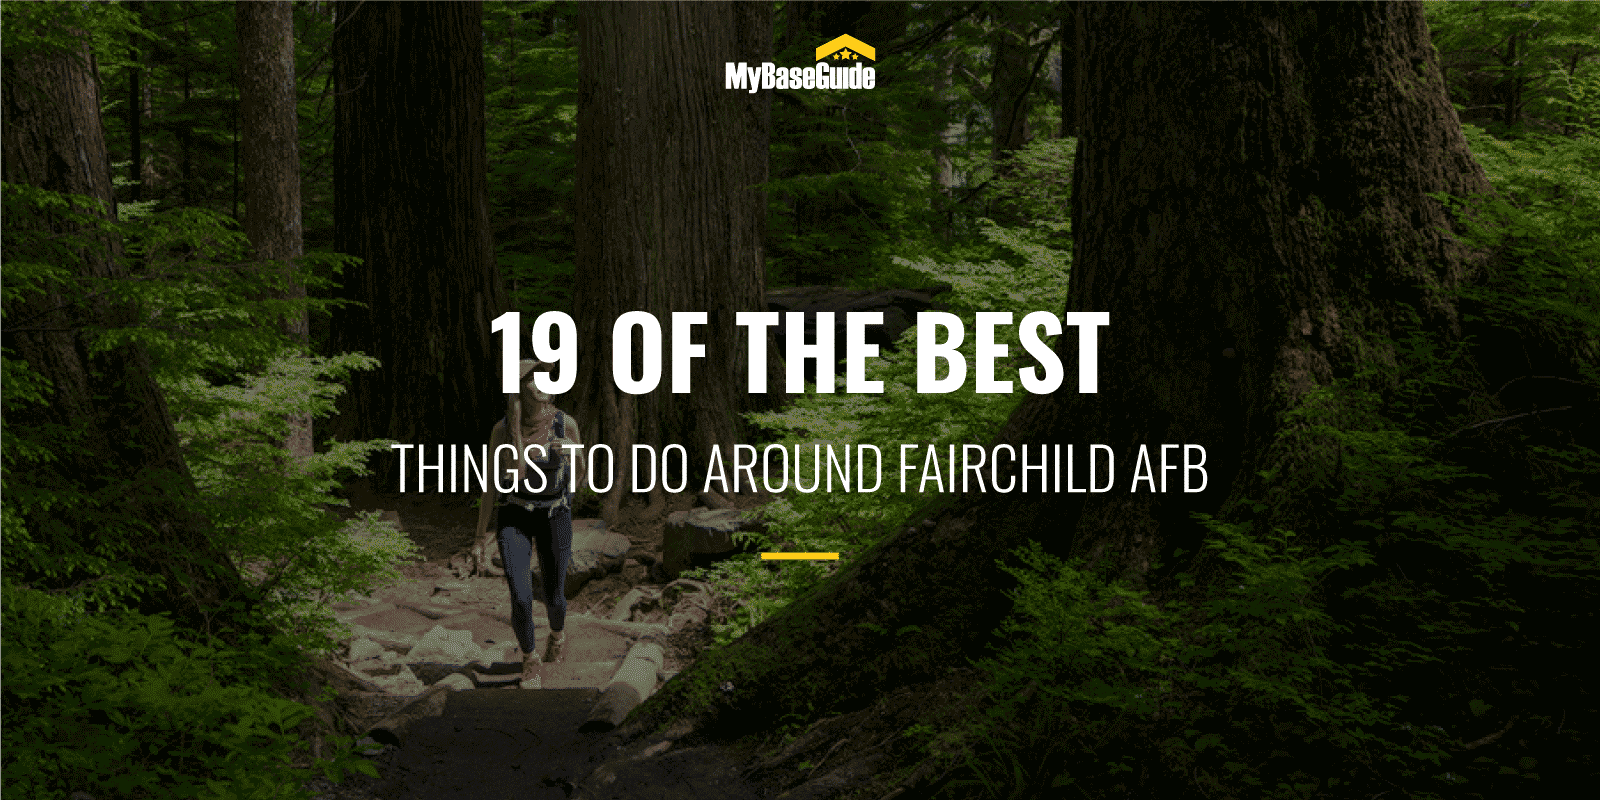 19 Of the Best Things to Do Around Fairchild AFB